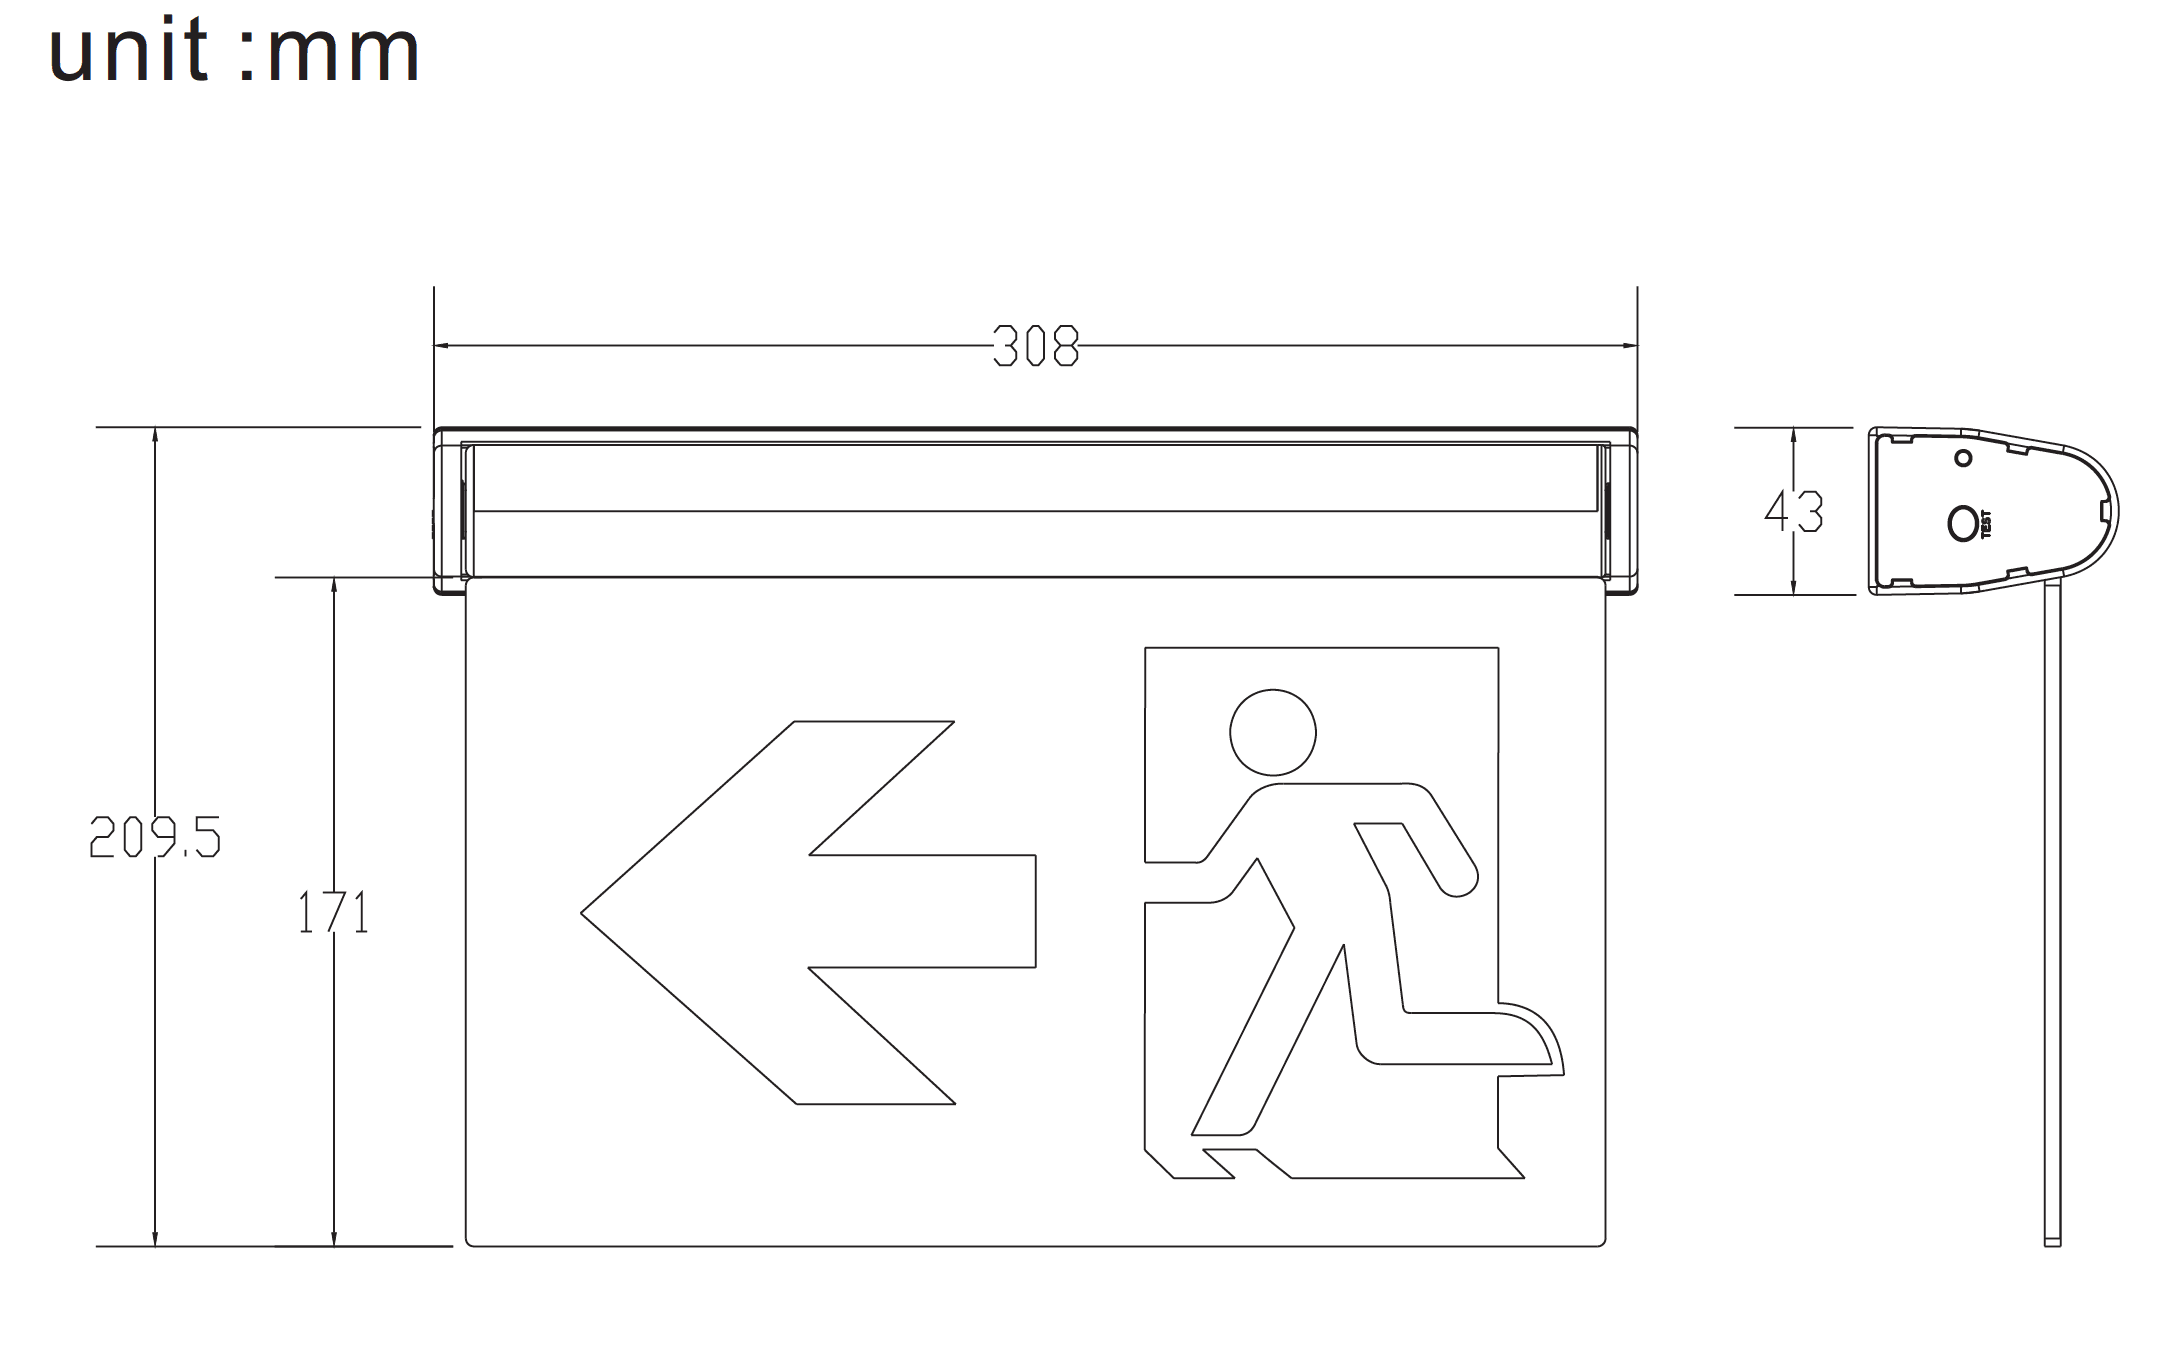 ST-ES6 LED Emergency Exit sign Dimensions